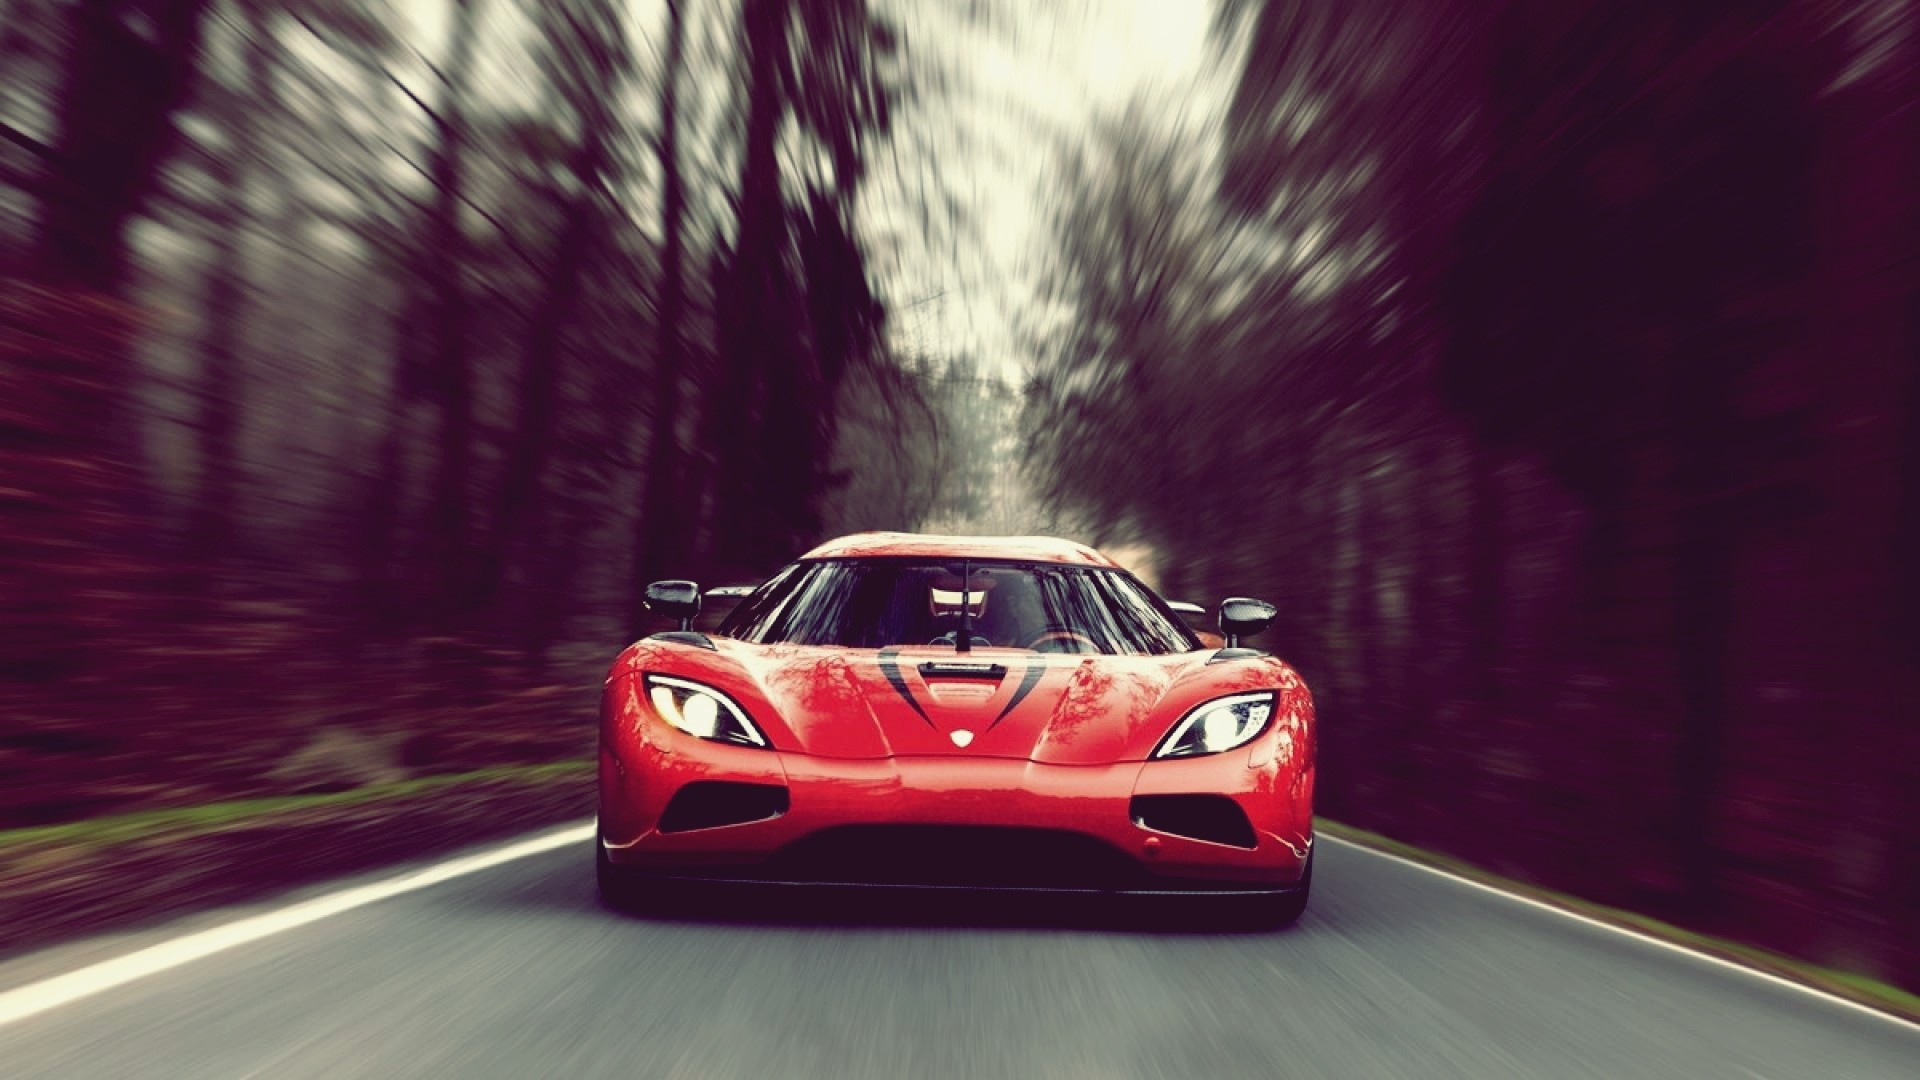 1920x1080 car, Motion Blur, Koenigsegg Agera R, Koenigsegg, Red Cars Wallpapers HD /  Desktop and Mobile Backgrounds